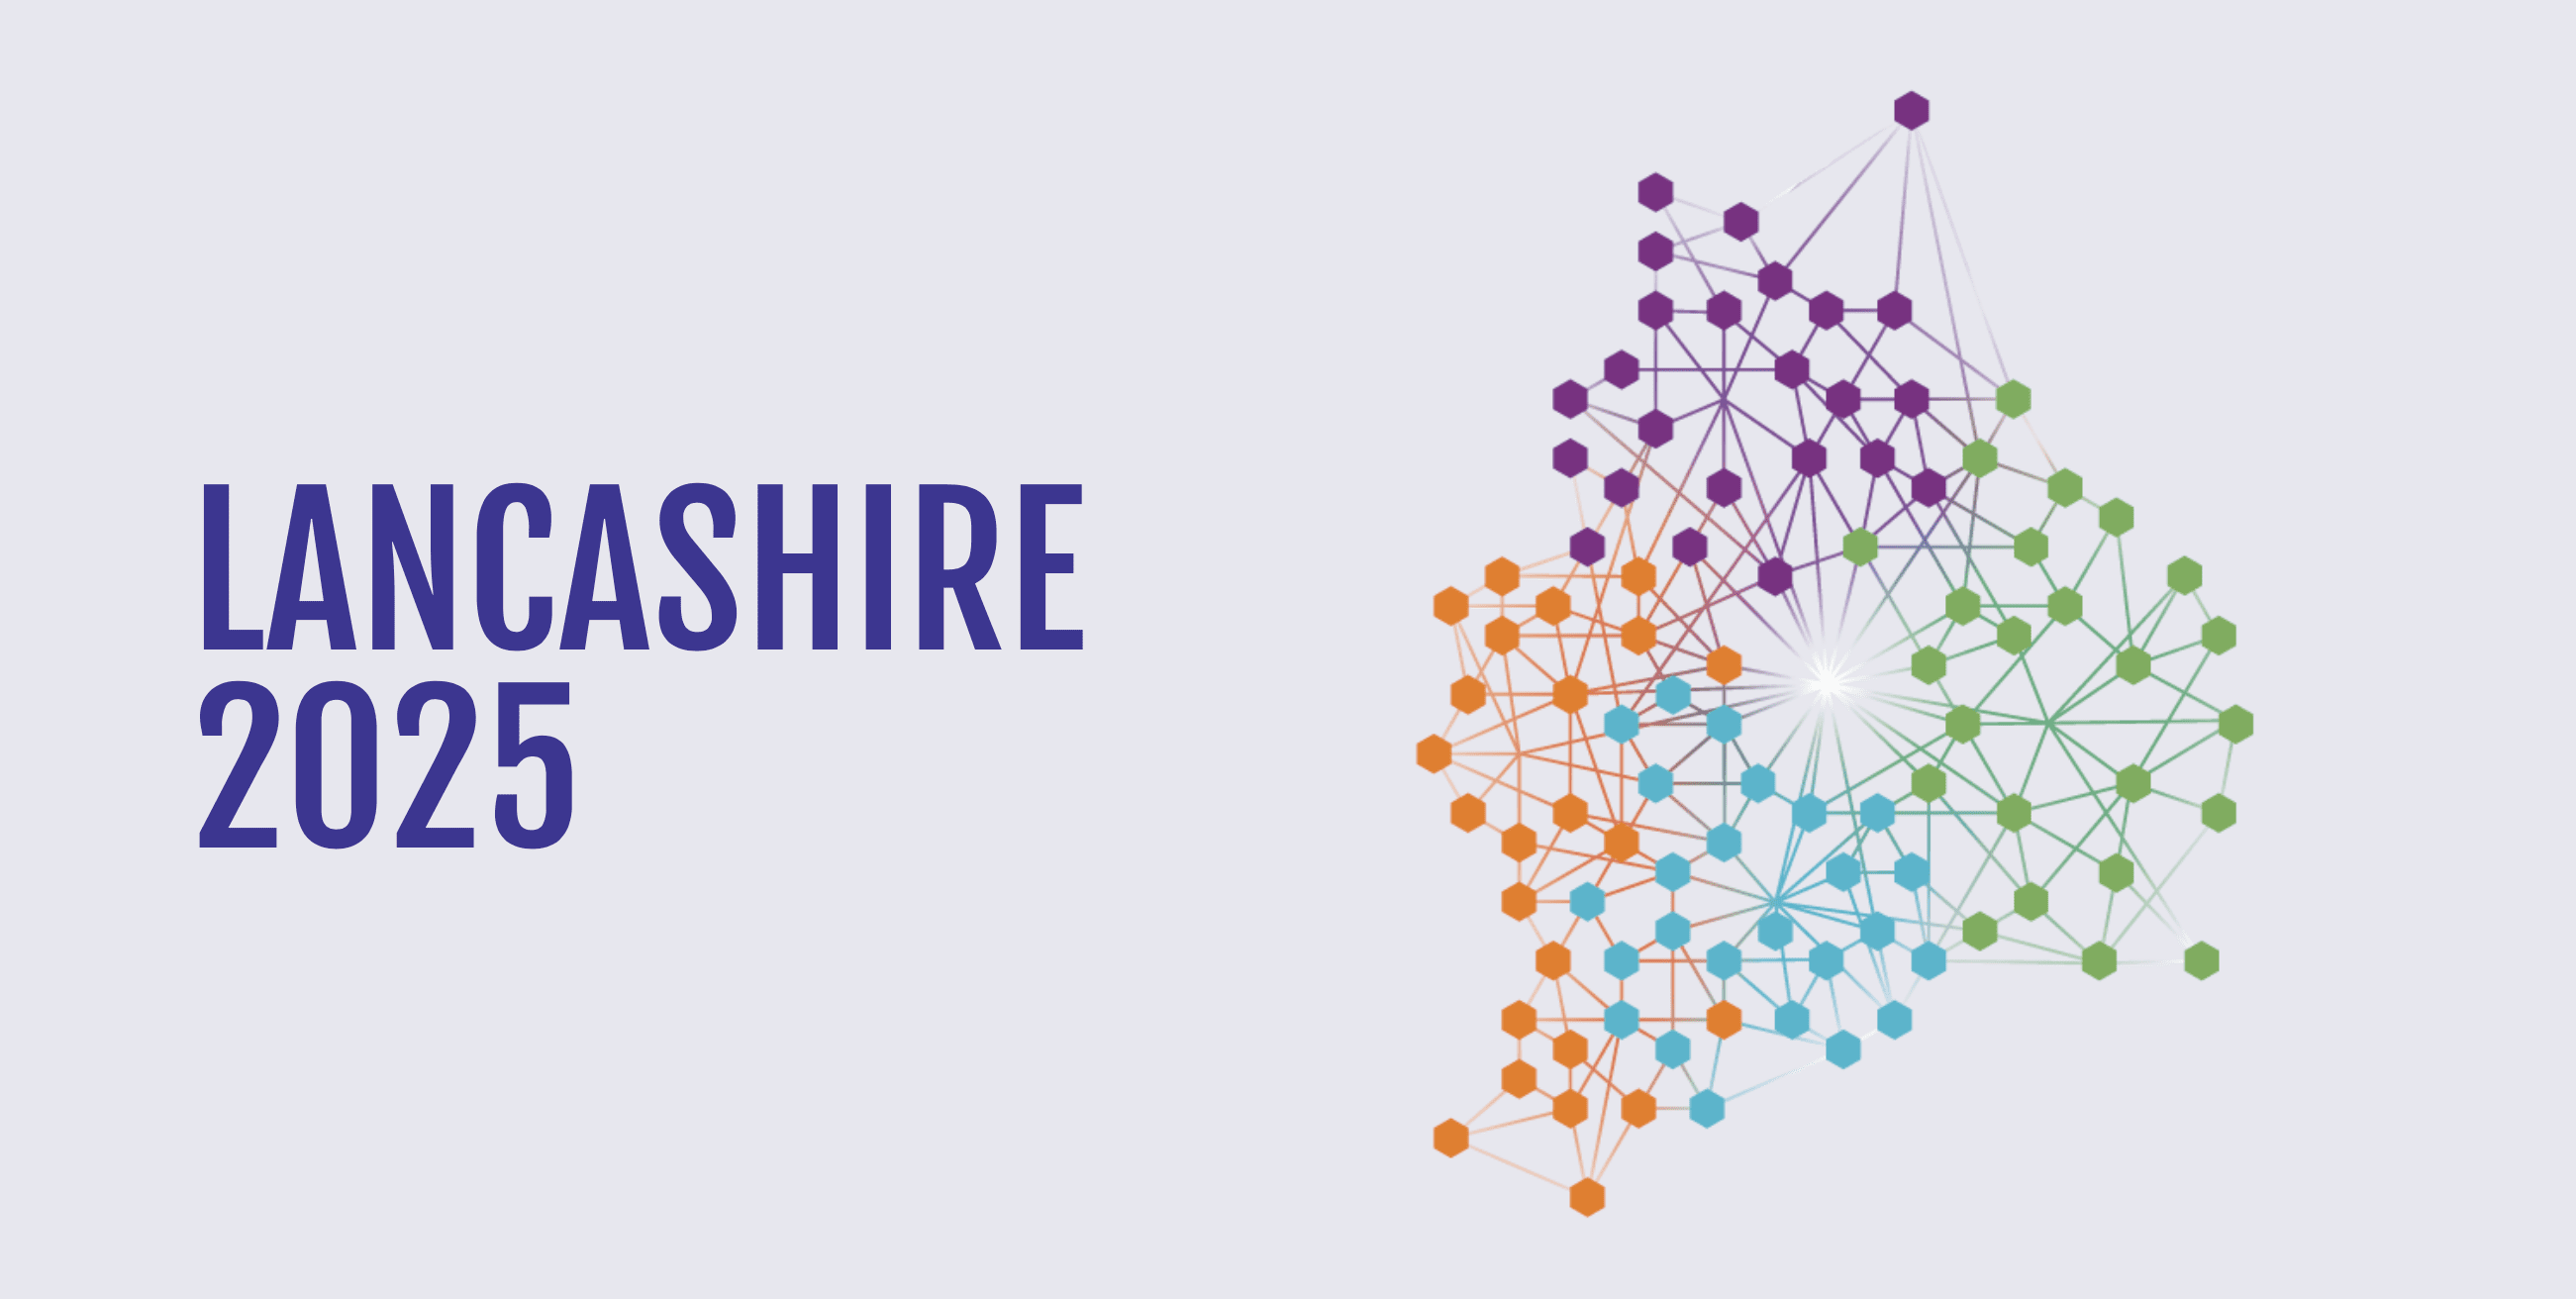 Lancashire's bid to become City of Culture 2025 needs your help!